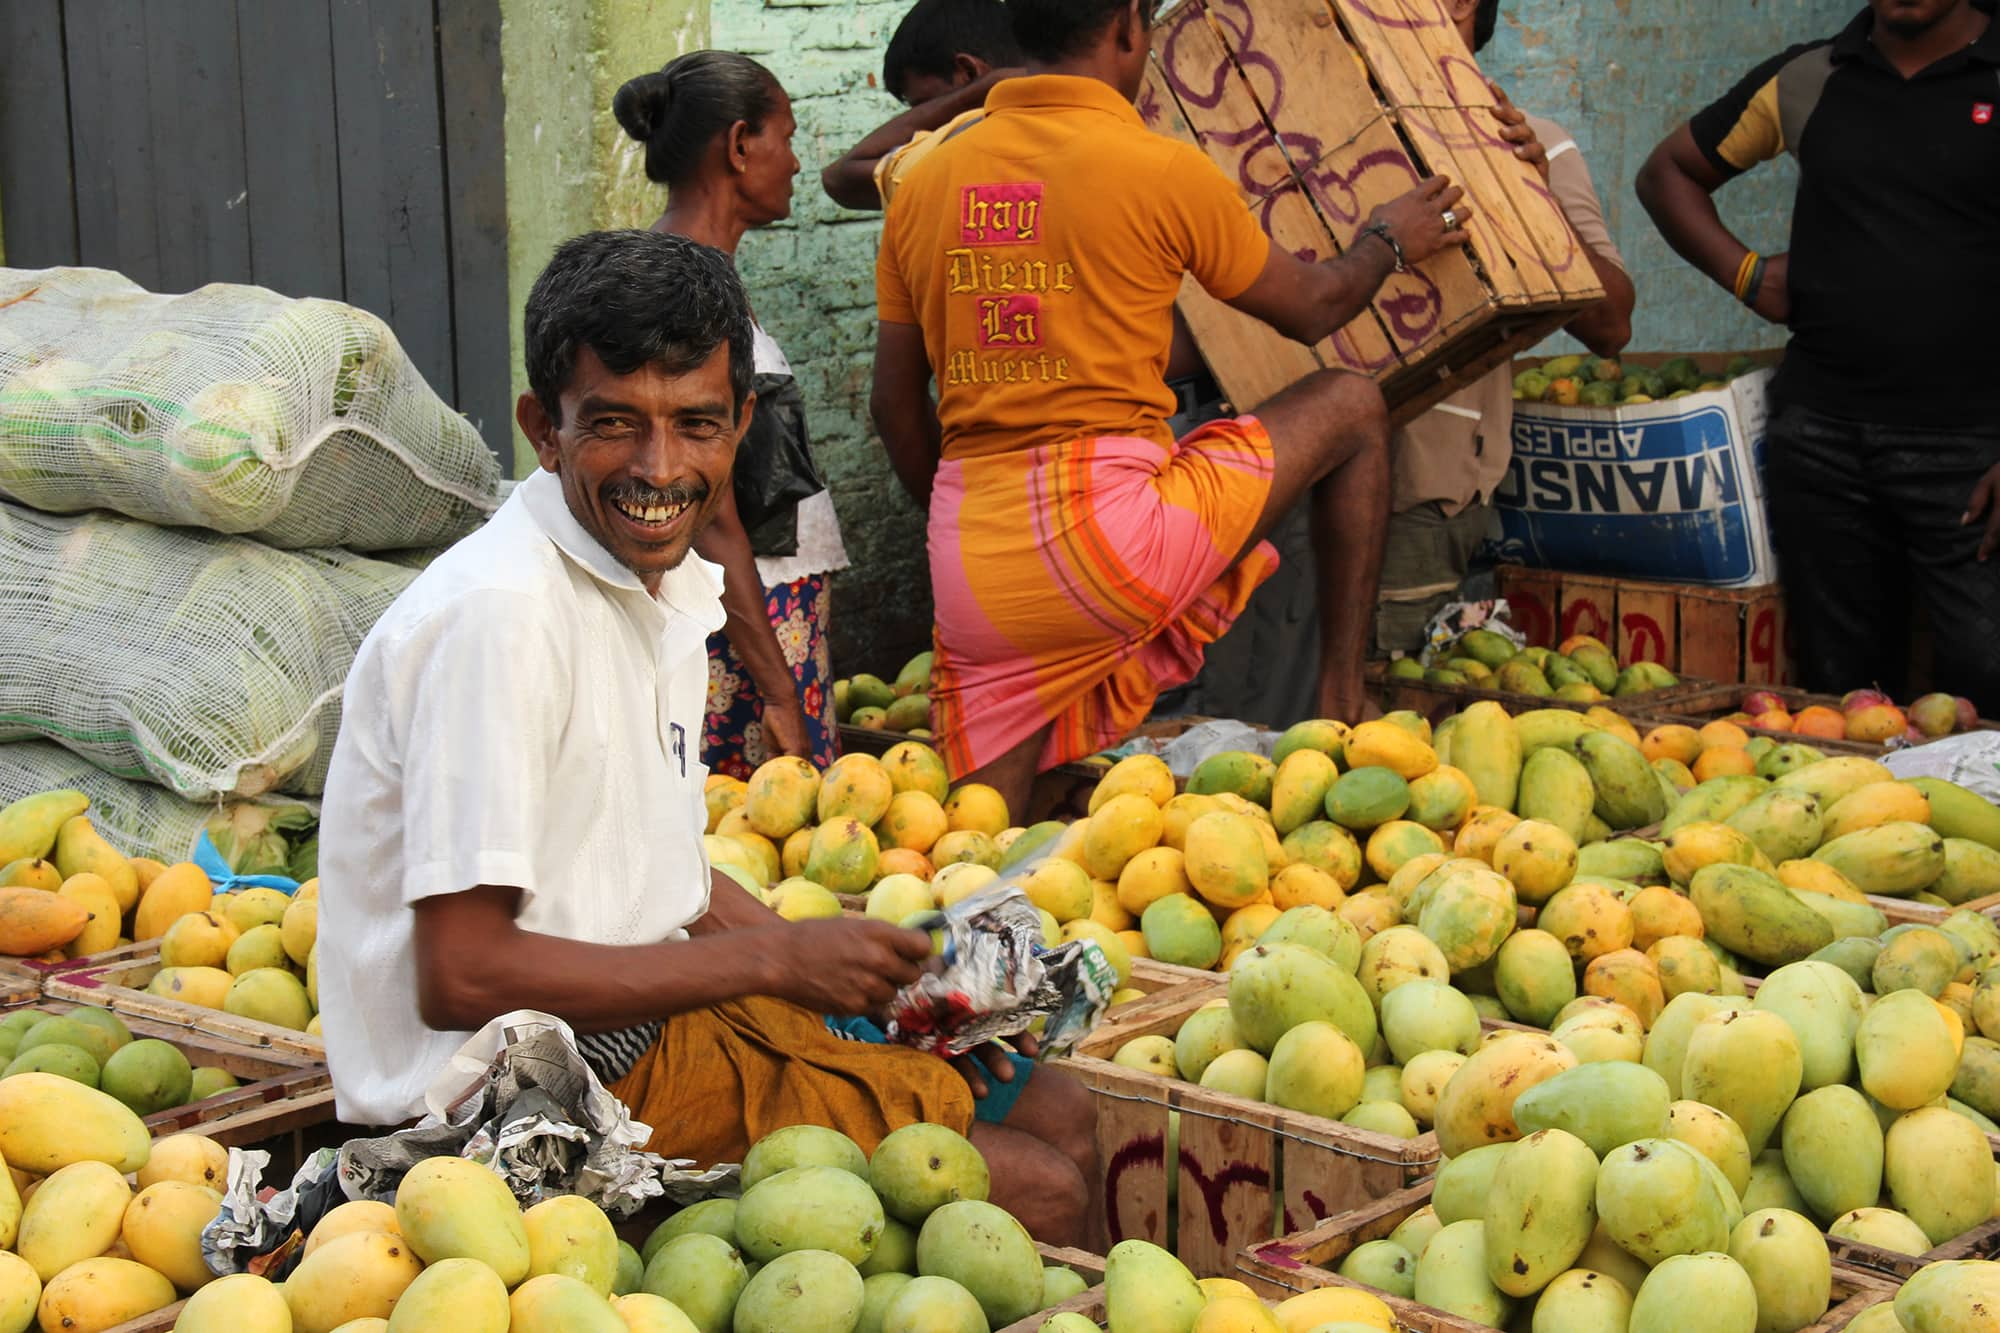 Mango trader in Sri Lanka with a smile on his face